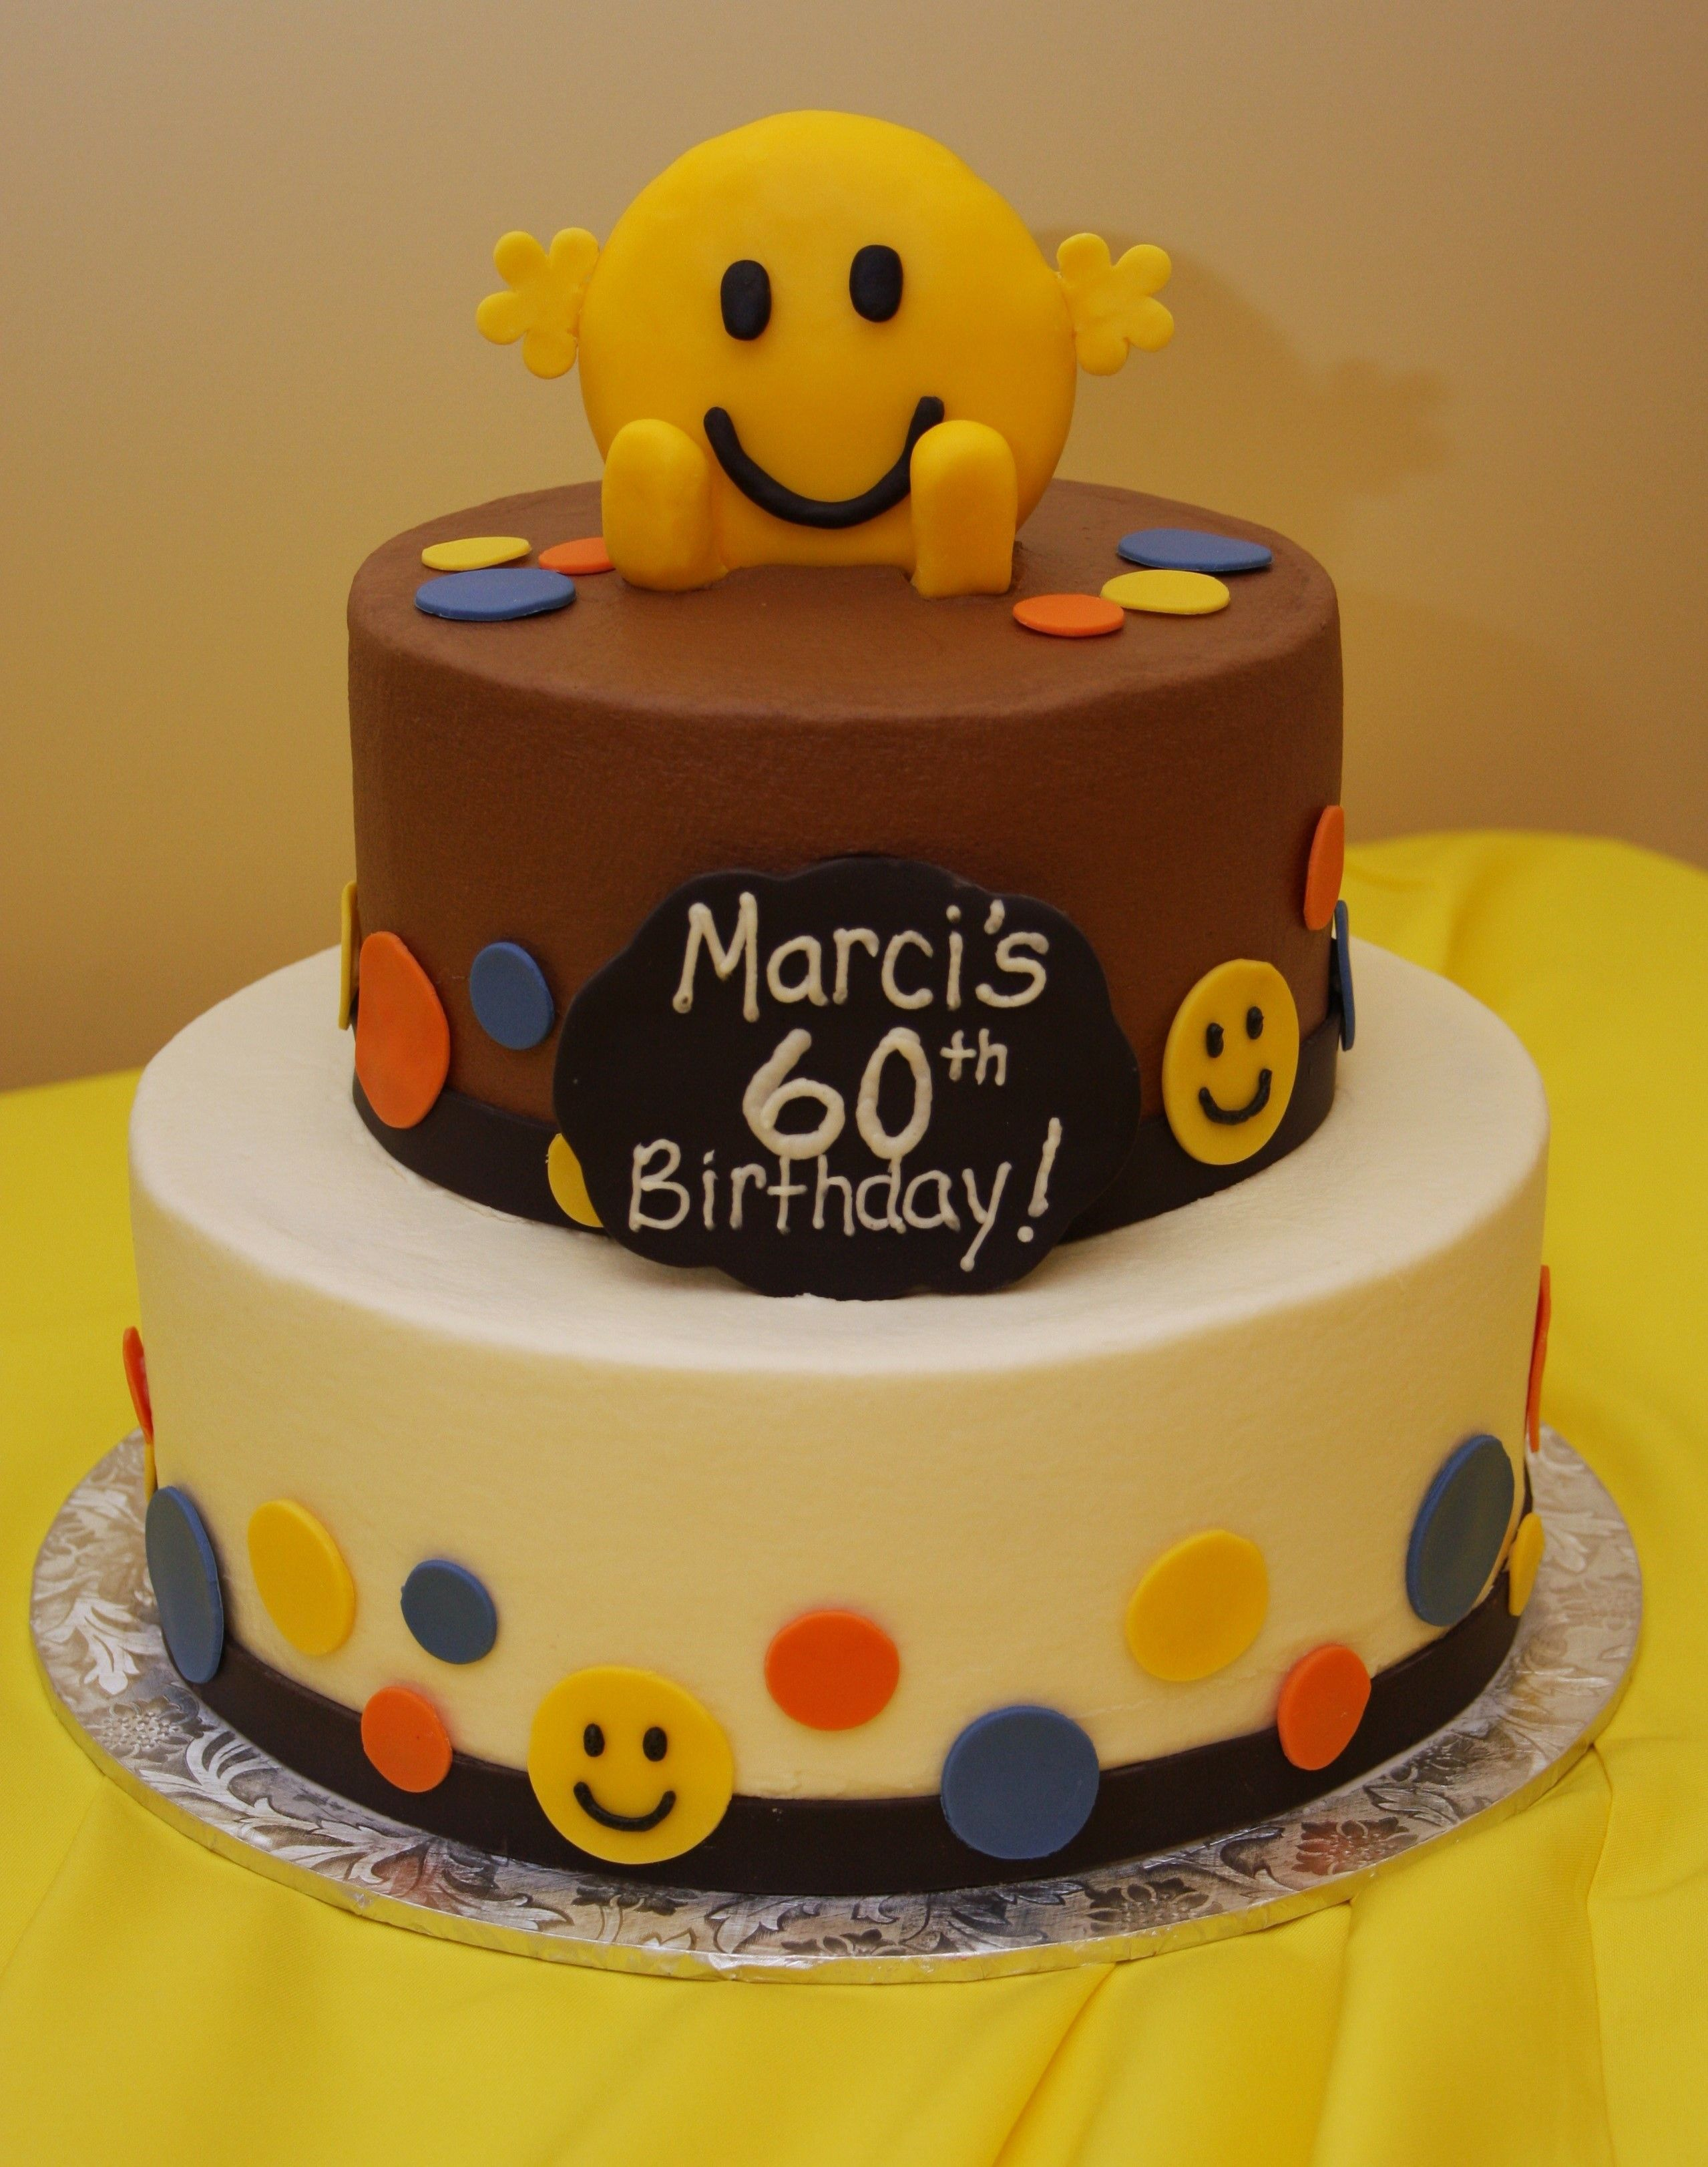 Smiley Face Birthday Cake With Images Cake Birthday